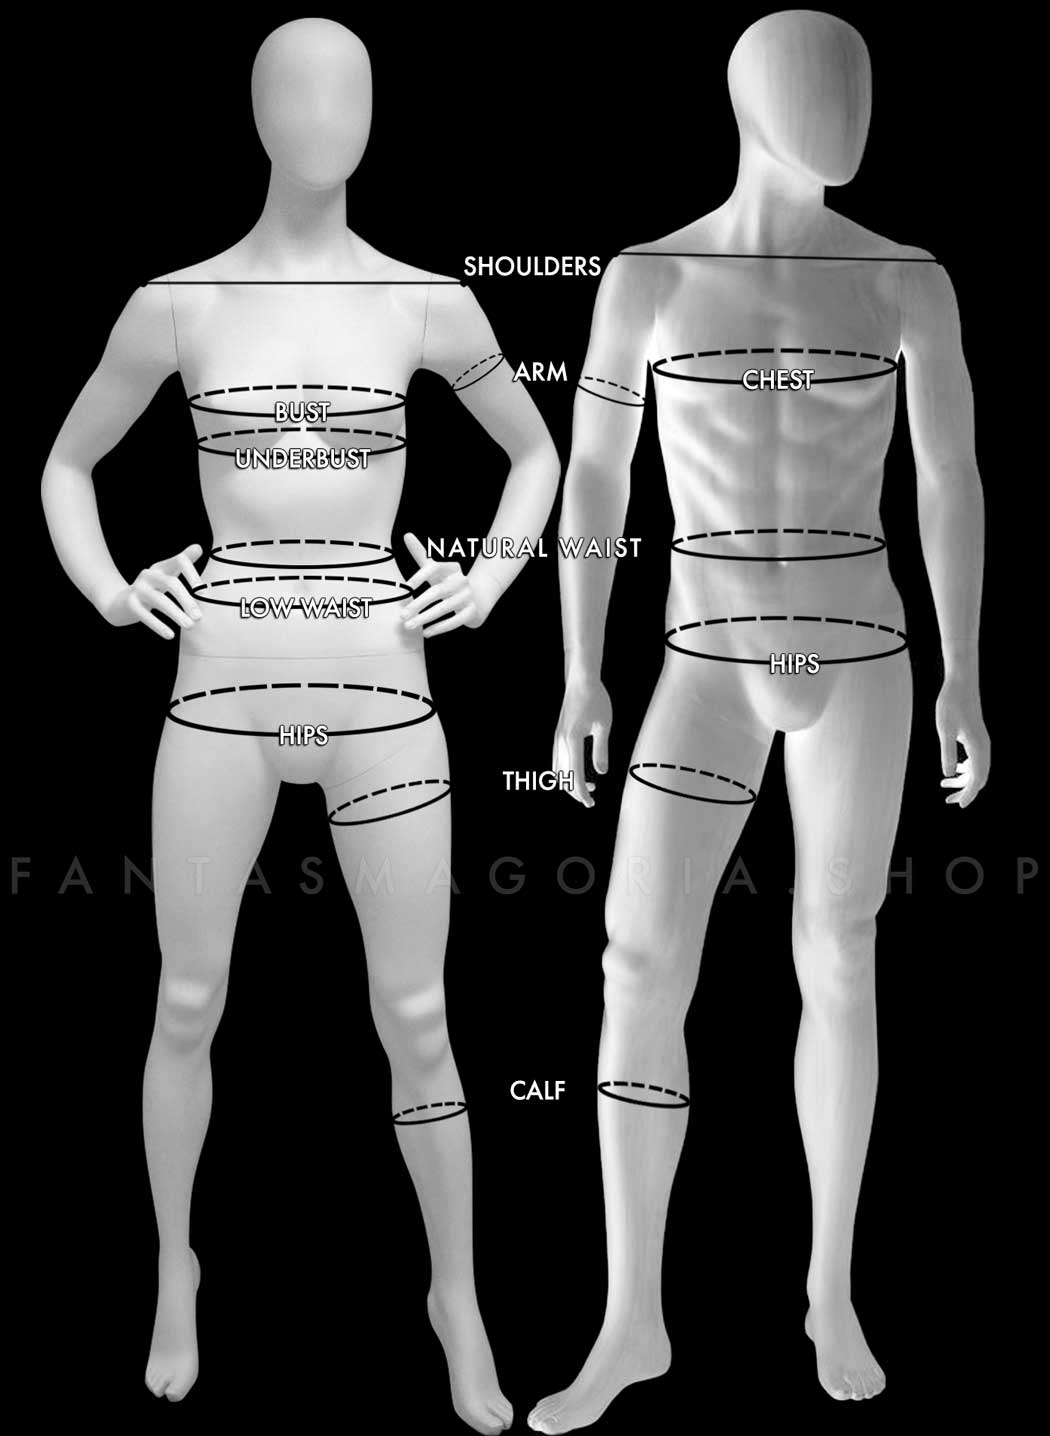 Female and Male mannequin bodies